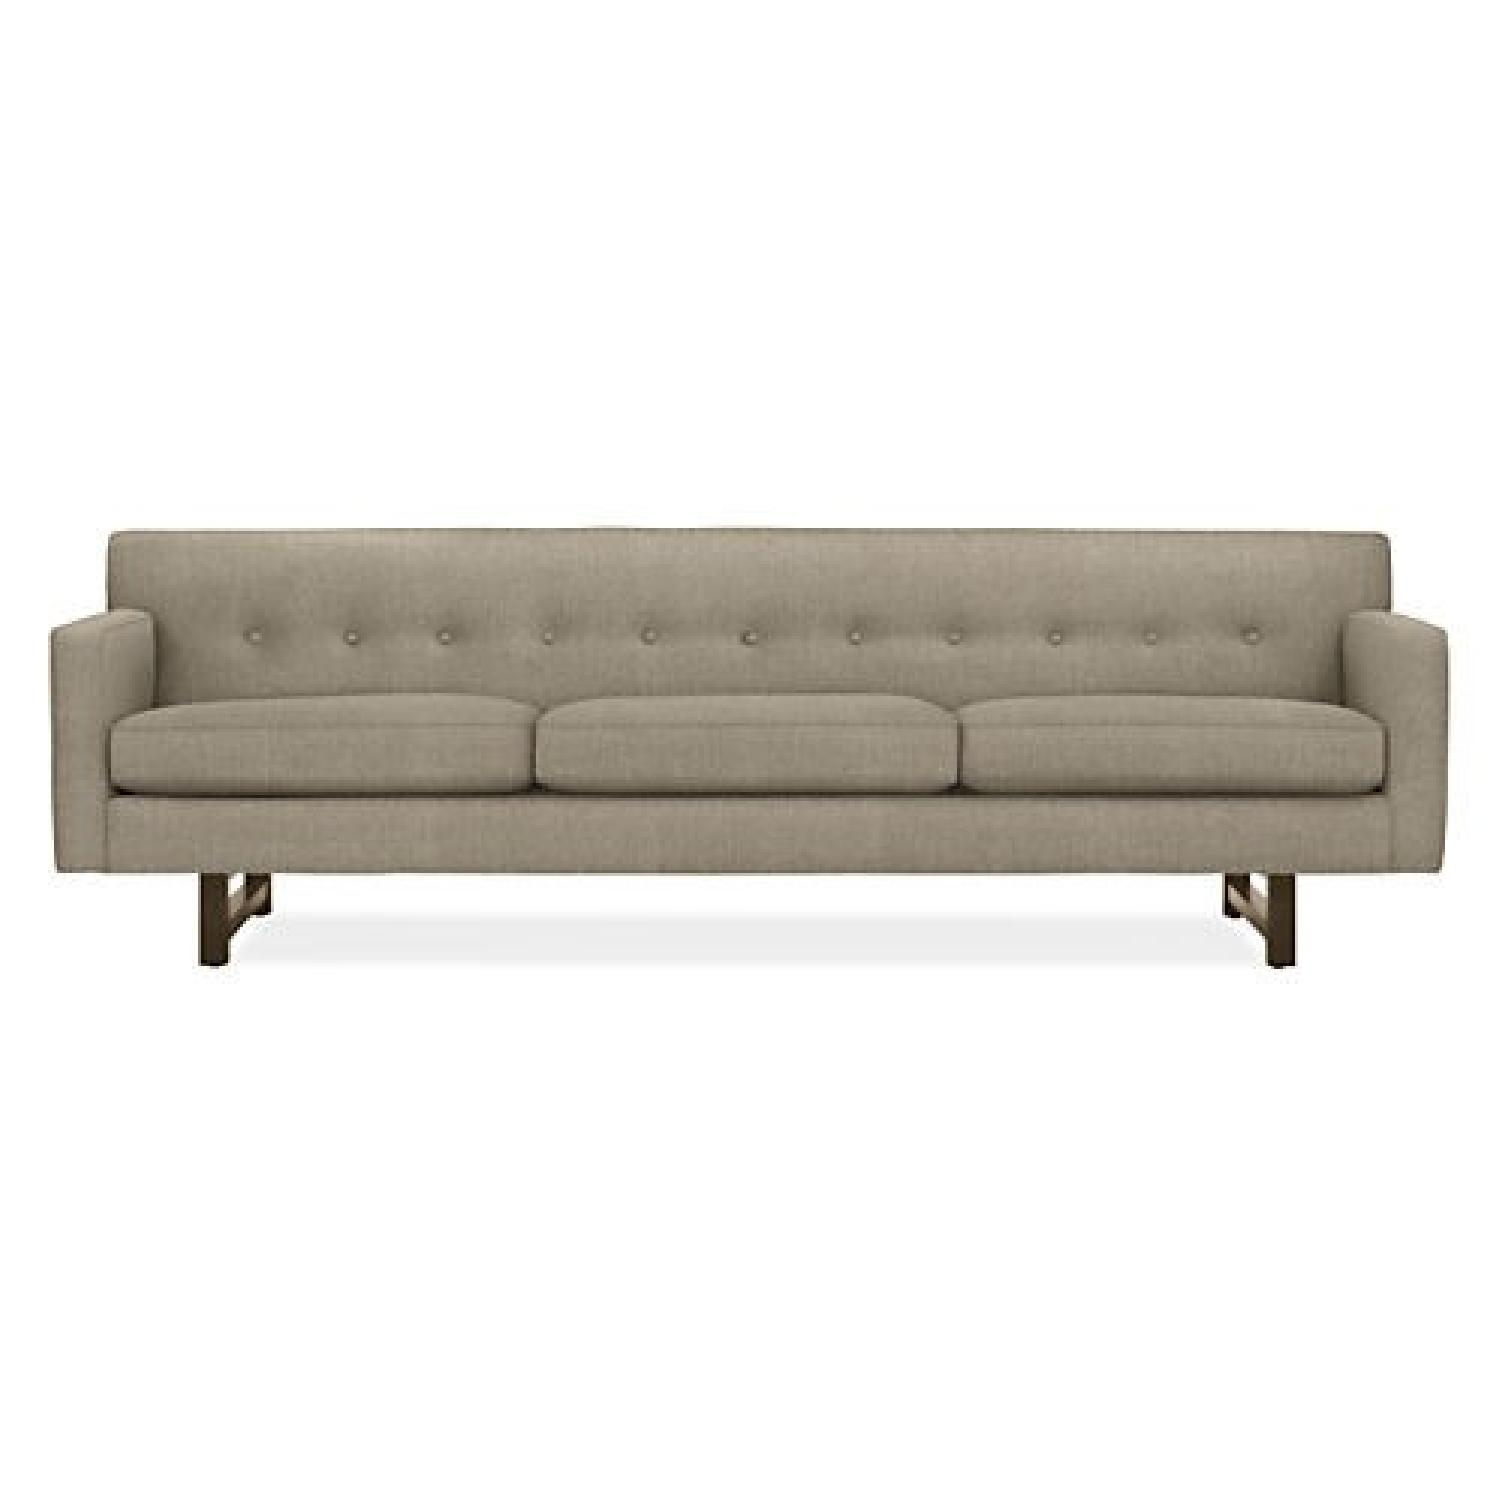 Room & Board Andre Sofa